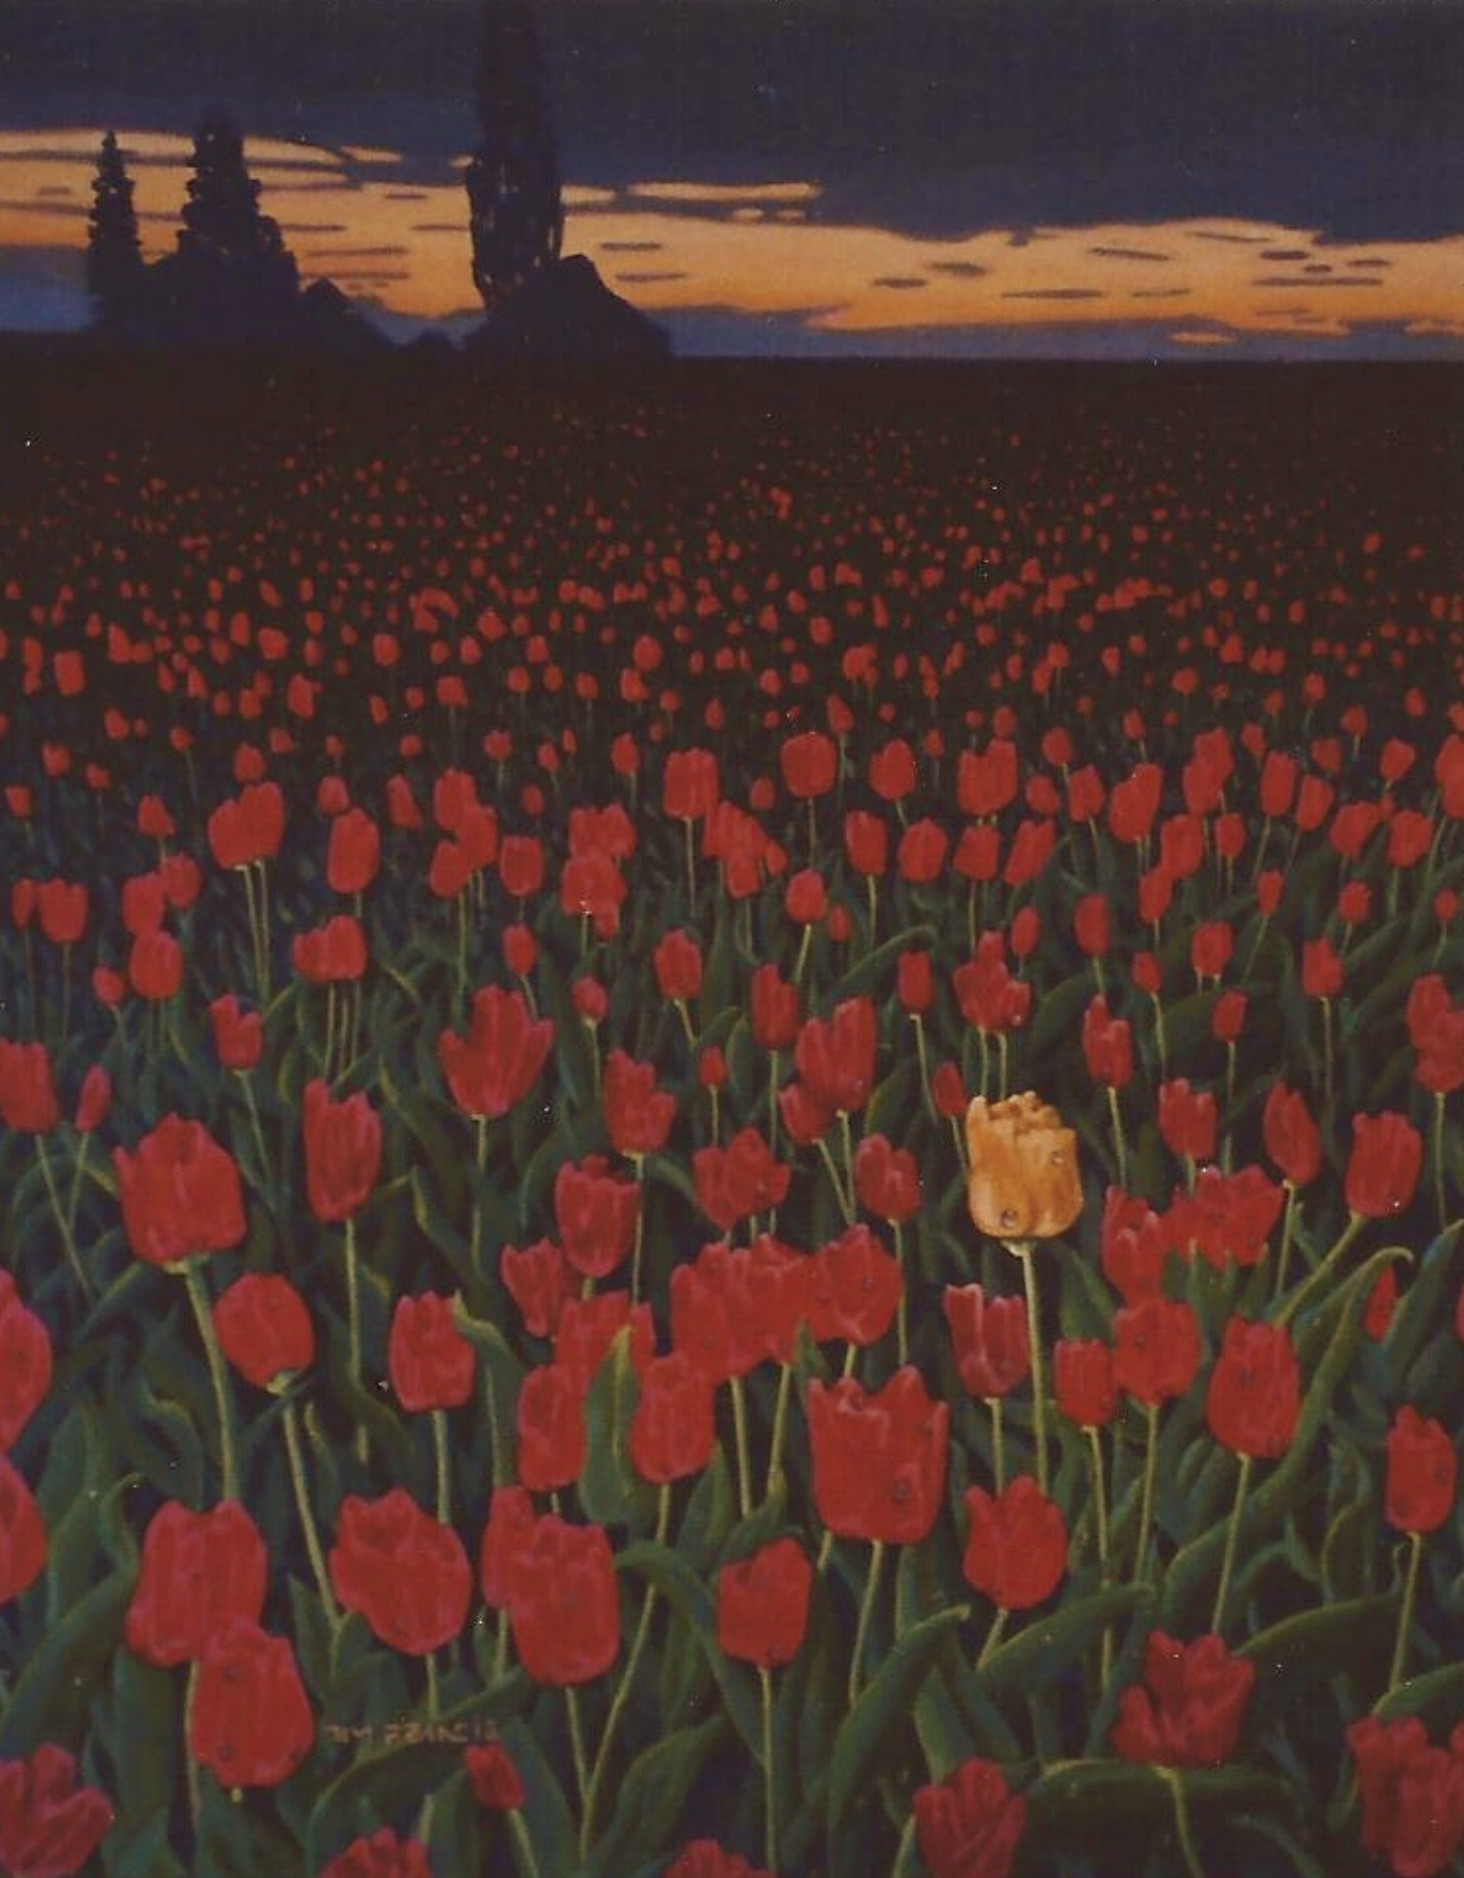 "yellow tulip - 1999, Acrylic on canvas, 16x20"" Private collection, Vancouver, BC"